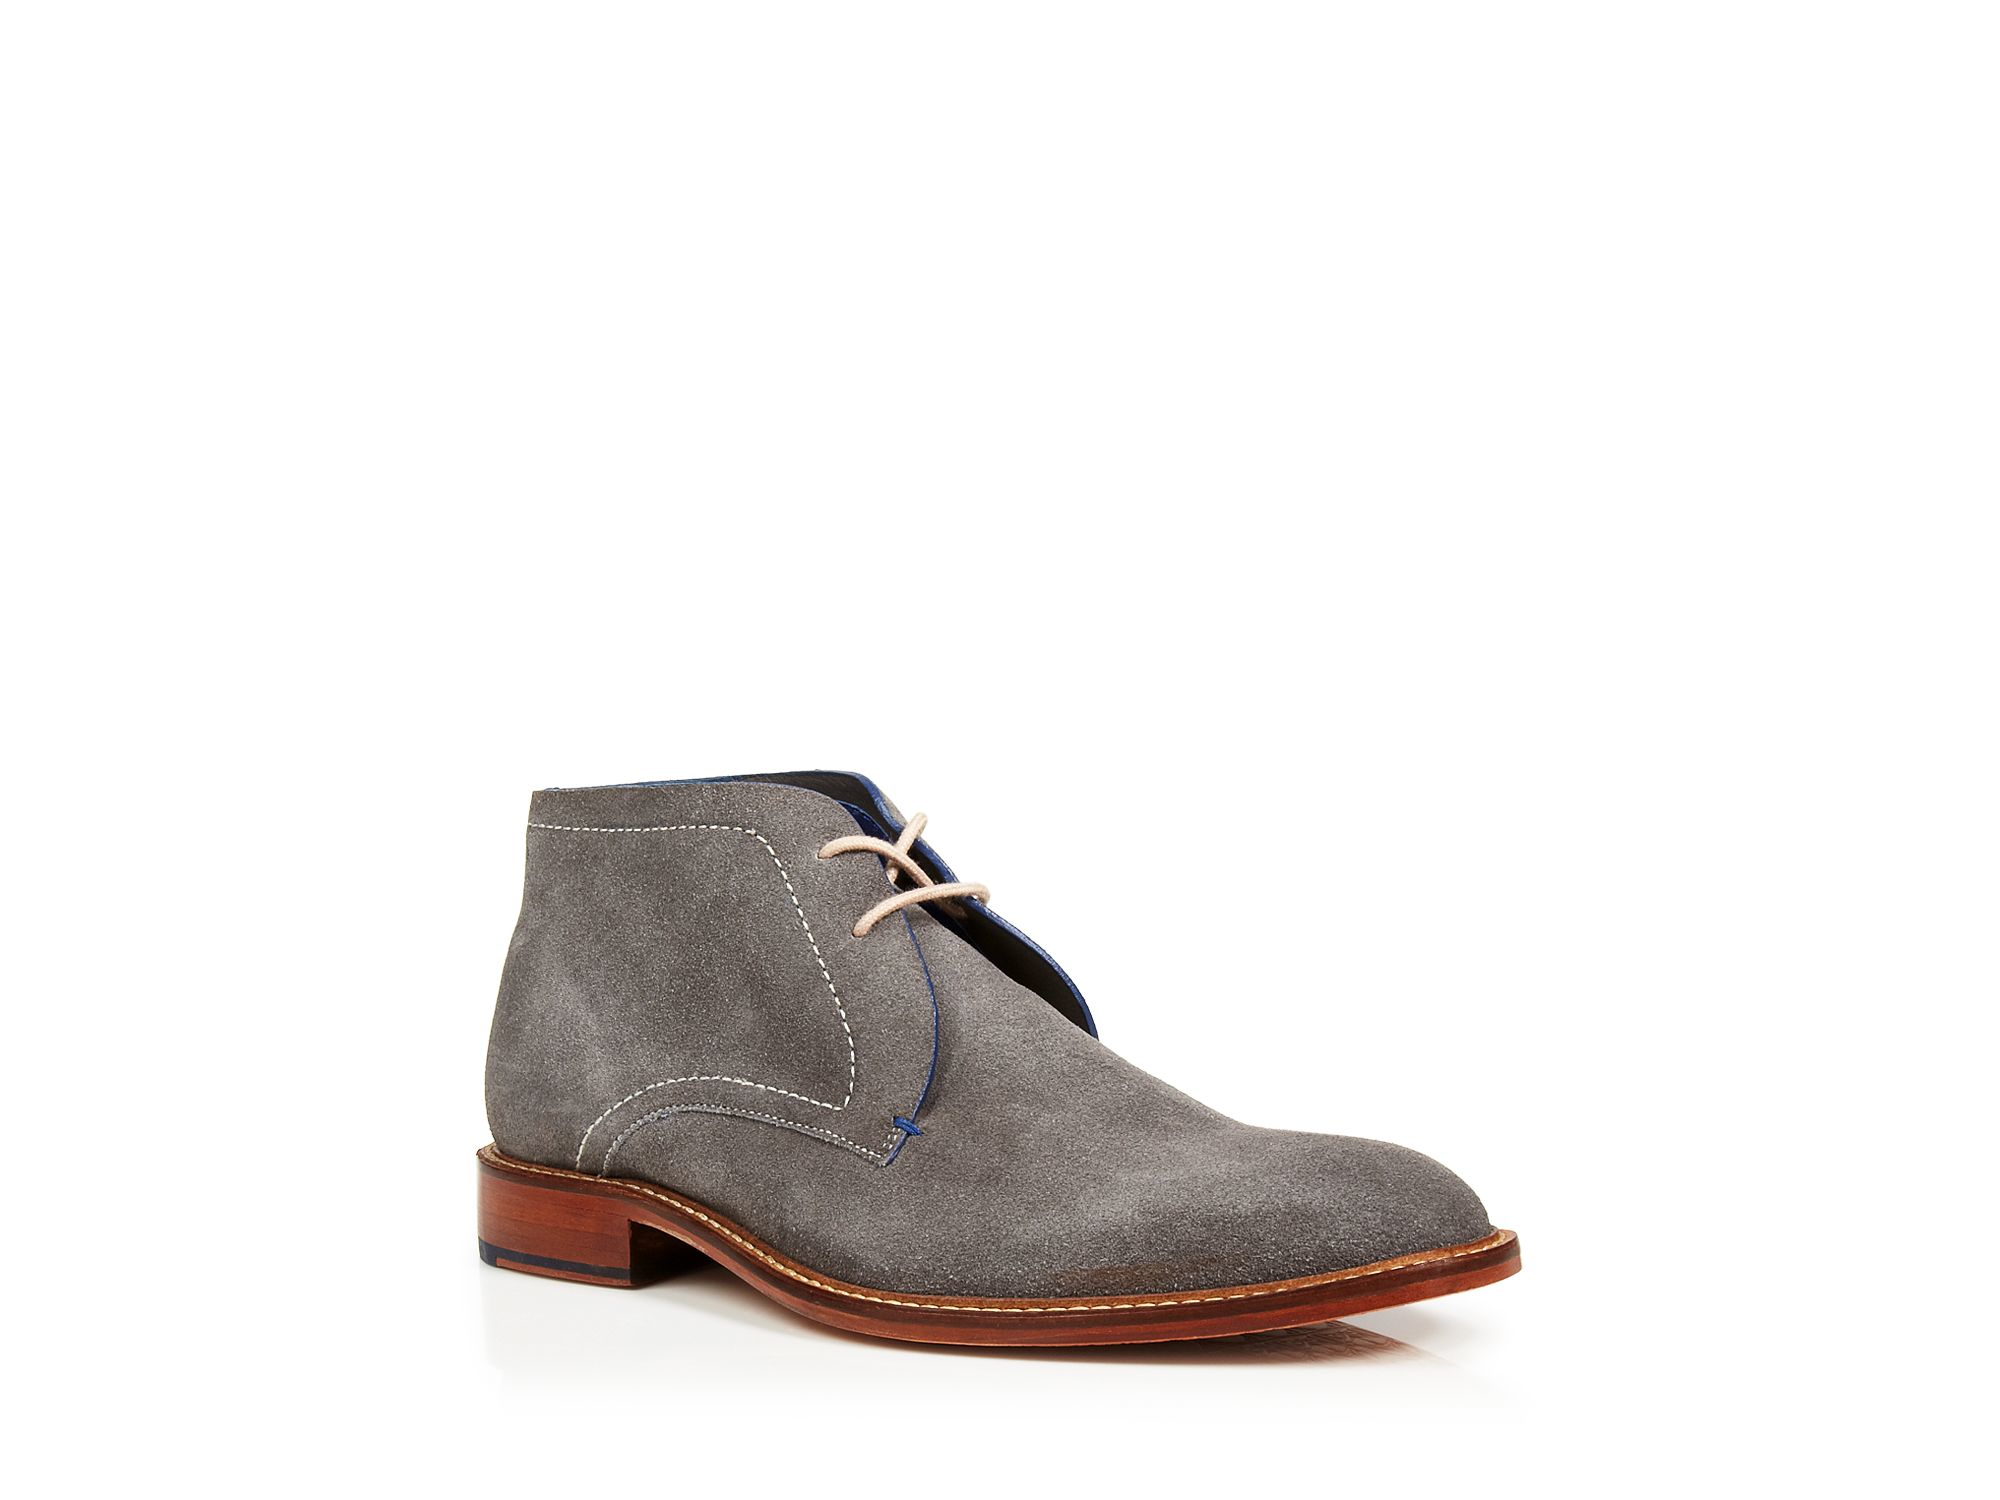 Lyst Ted Baker Torsdi 3 Suede Chukka Boots In Gray For Men